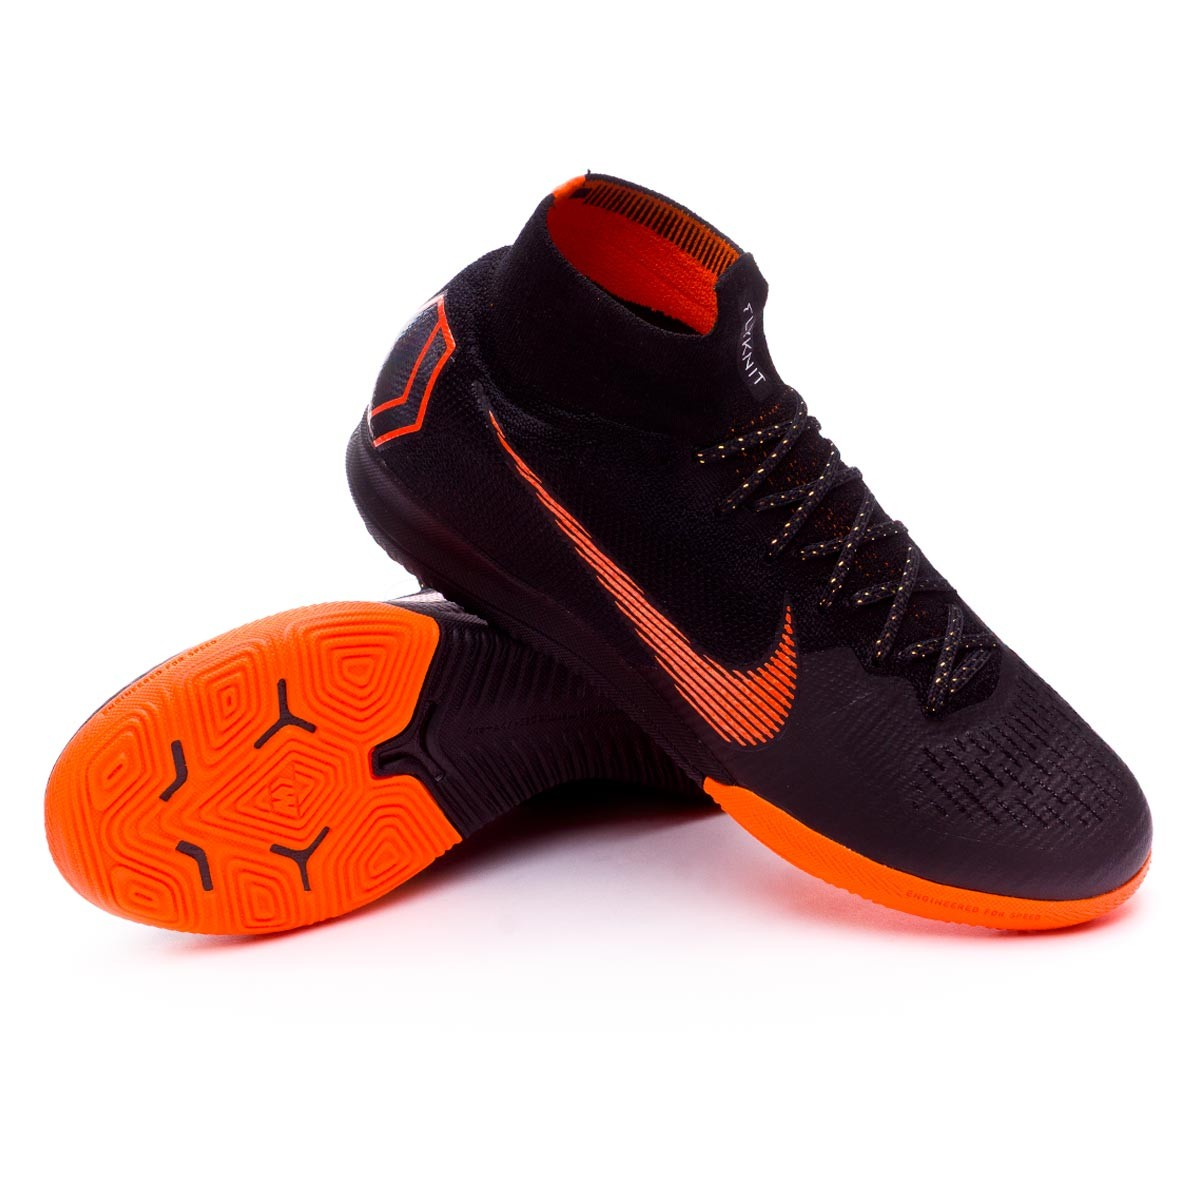 ... Zapatilla Mercurial SuperflyX VI Elite IC Black-Total orange-White.  CATEGORY. Futsal 335218f903923